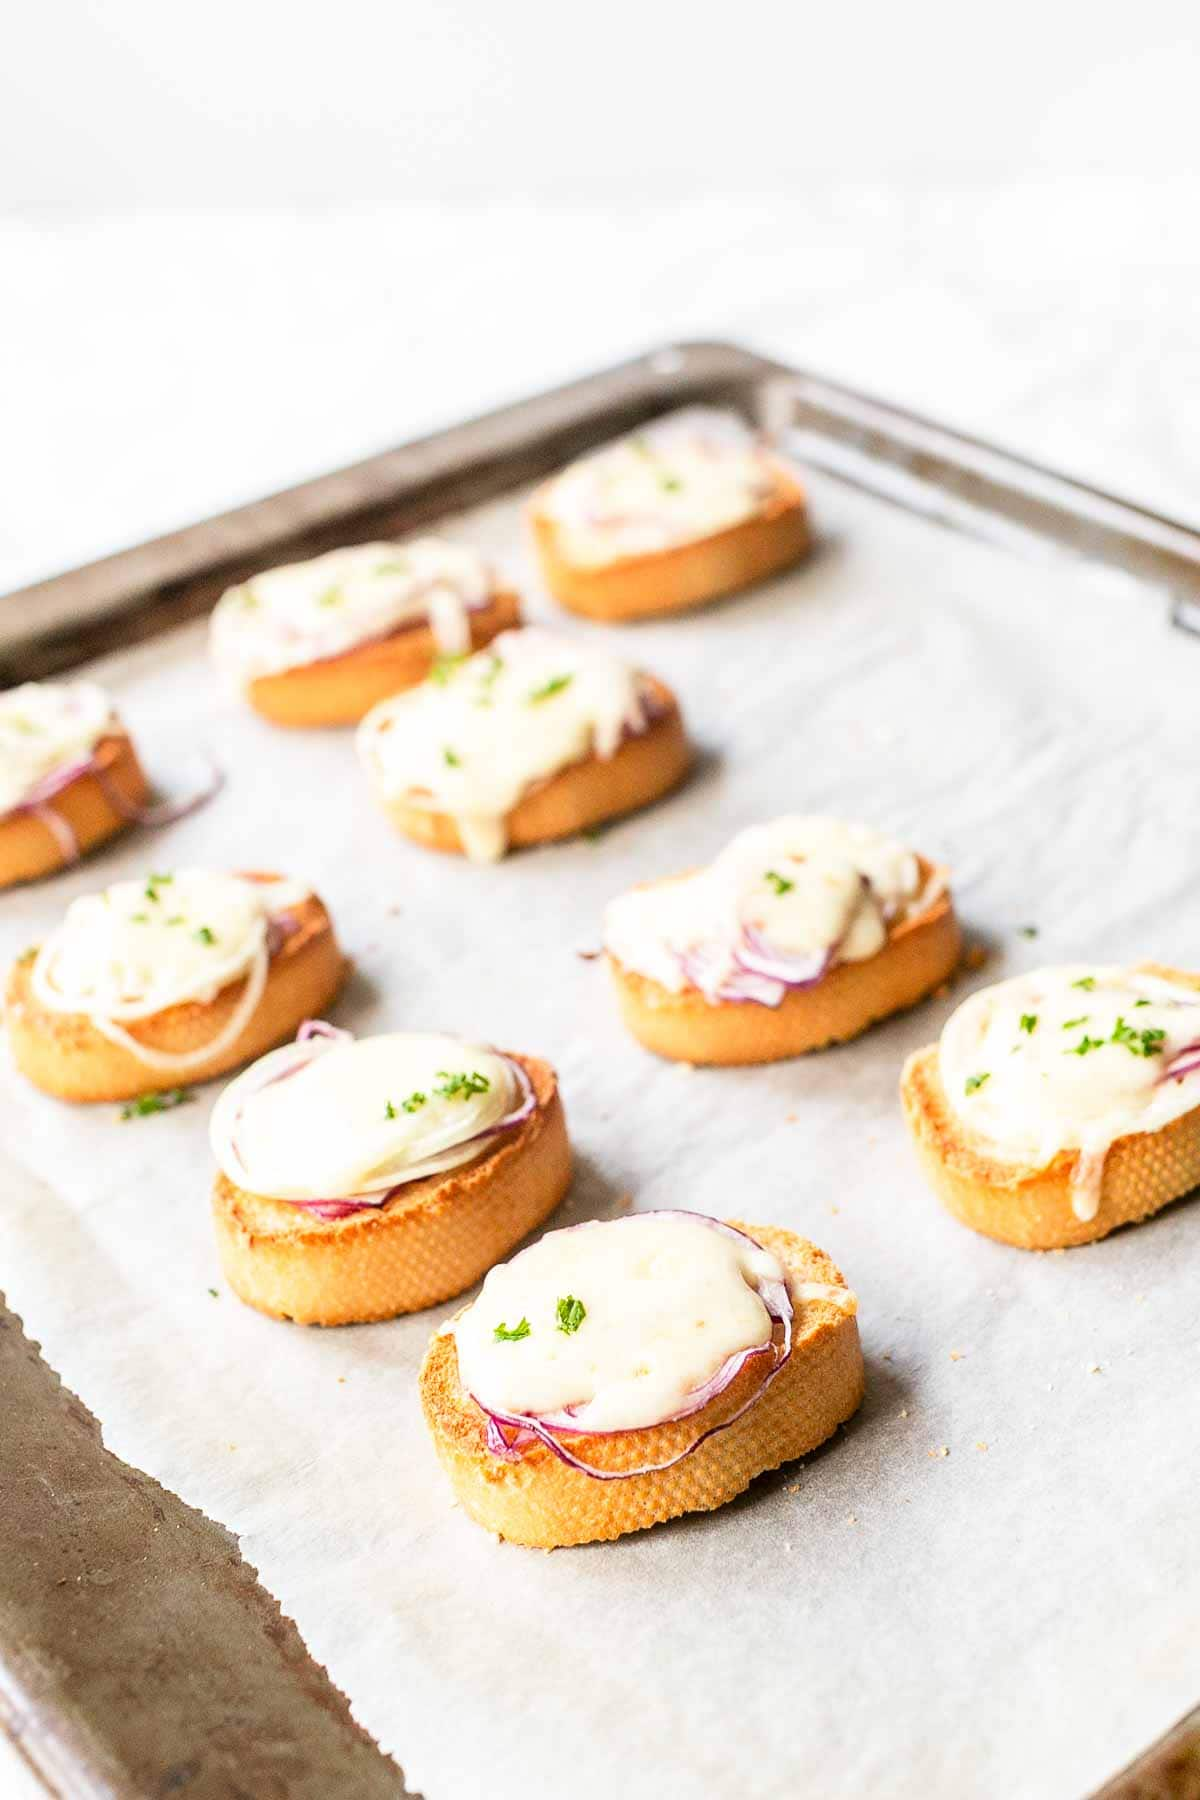 Cheese onion crostini are amazing appetizers that you can serve as a side dish to soup or as a snack. Quick and easy recipe, on the table in no time and so tasty. Visit fastfoodbistro.com for the full recipe #fastfoodbistro #crostini #cheeseonioncrostini #appetizer